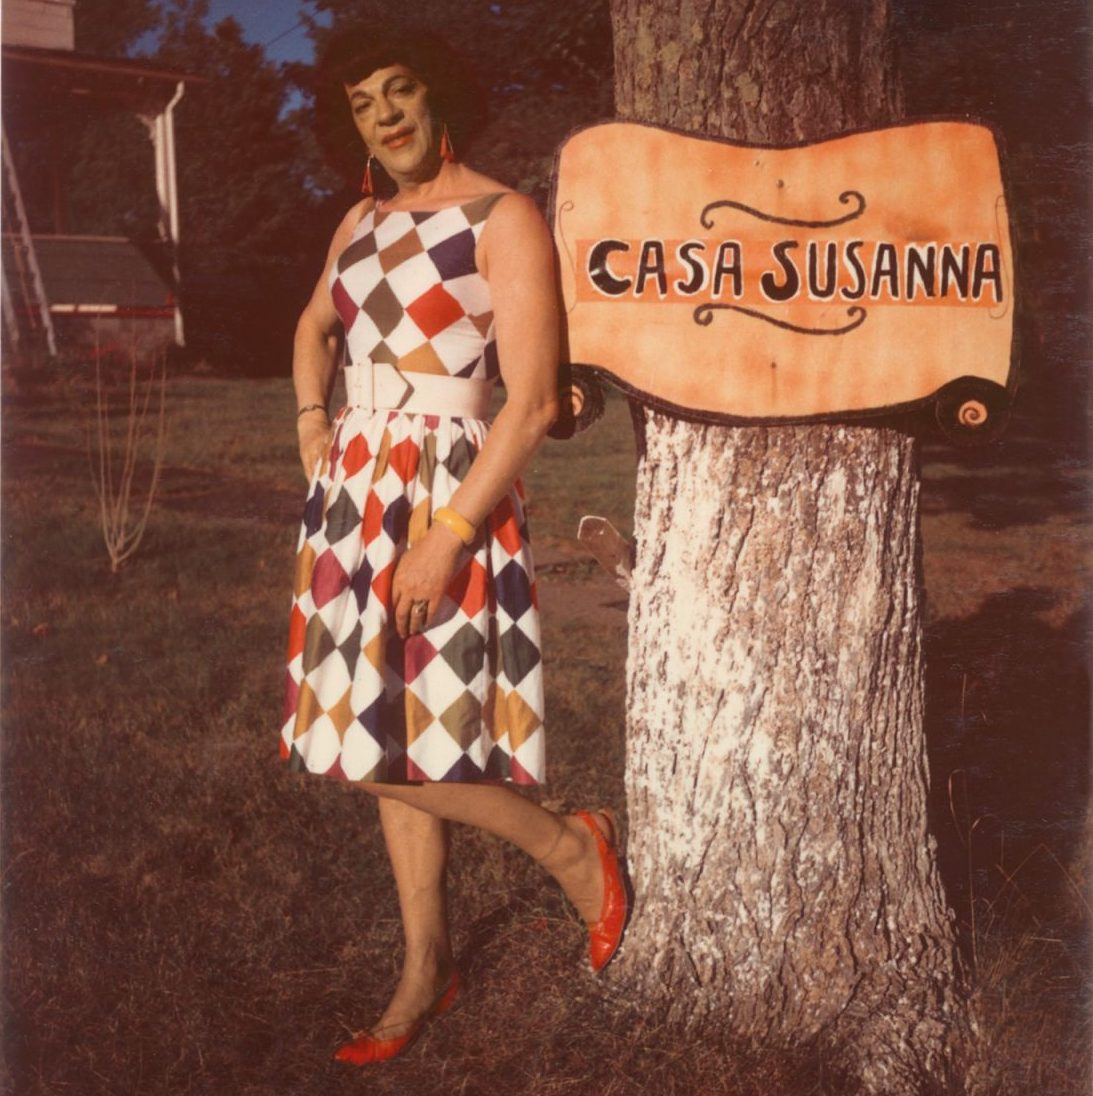 The 1950s Cross-Dressers of New York's Casa Sussanna Club